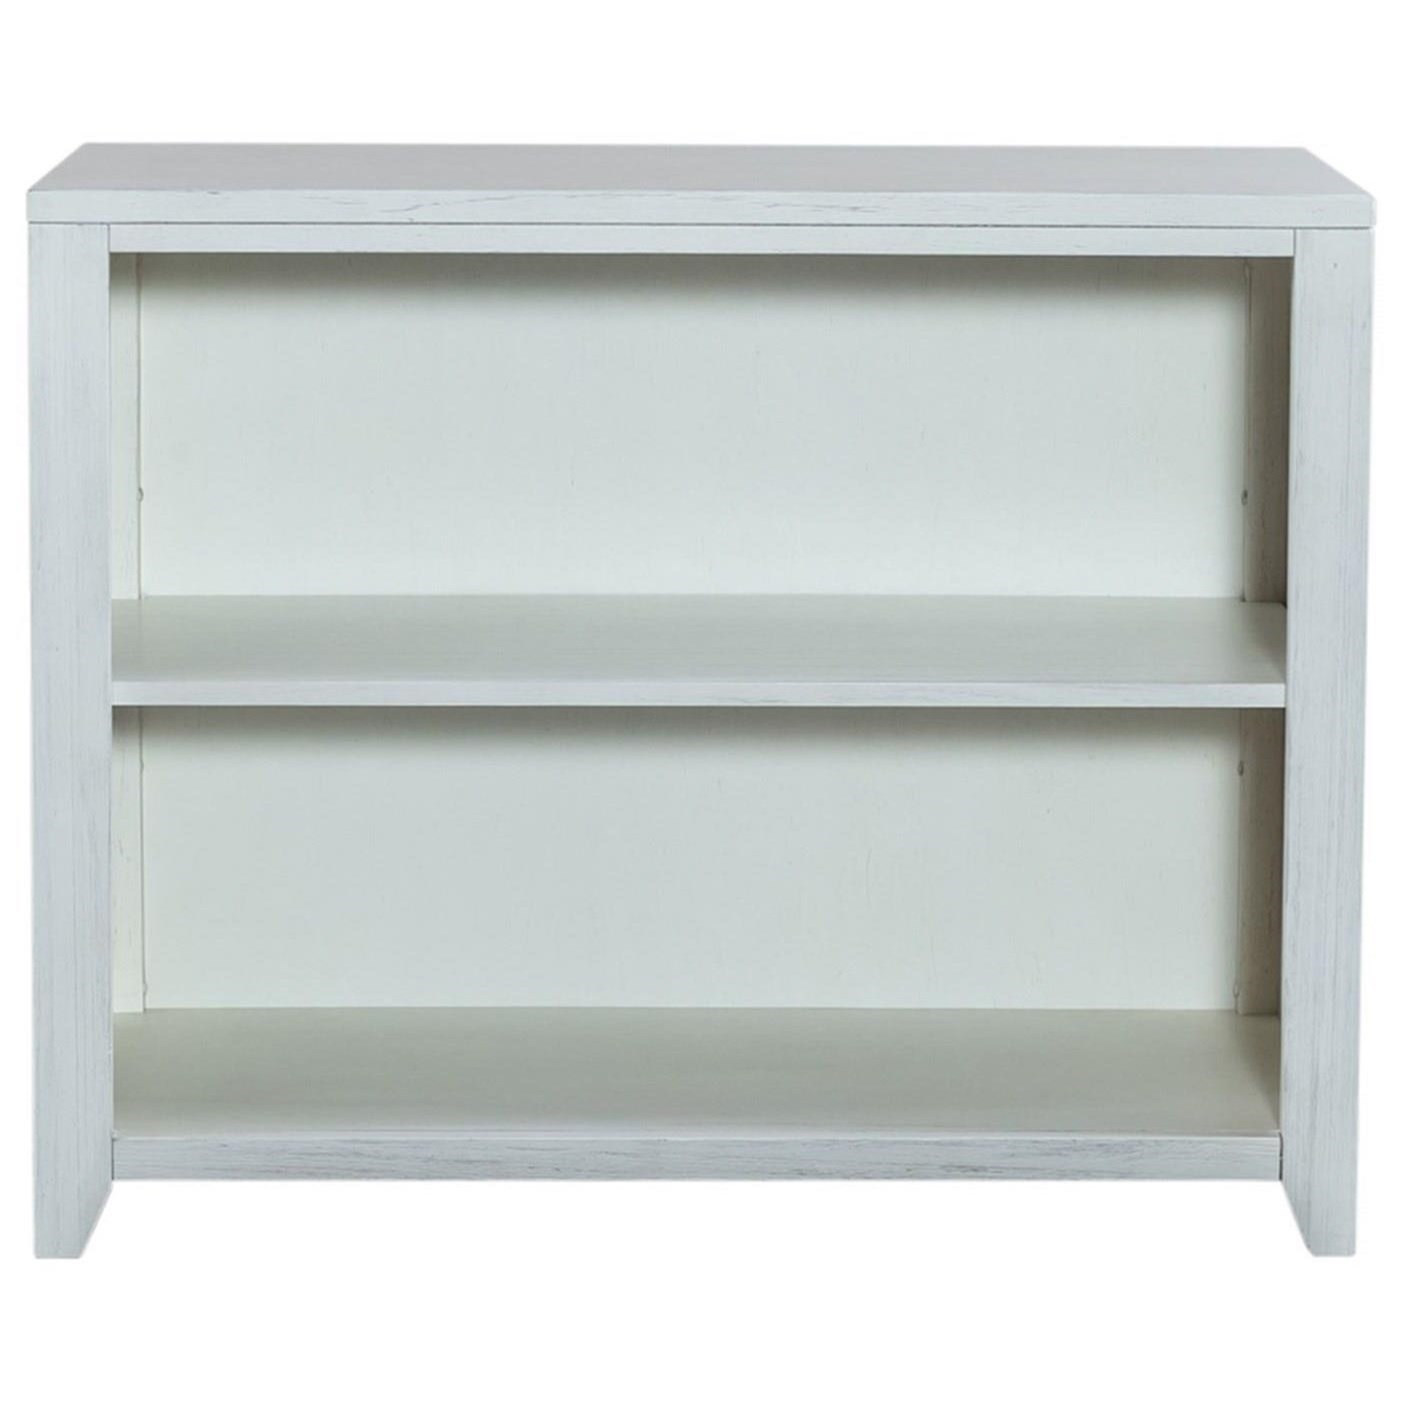 Allyson Park Open Bookcase by Liberty Furniture at Catalog Outlet